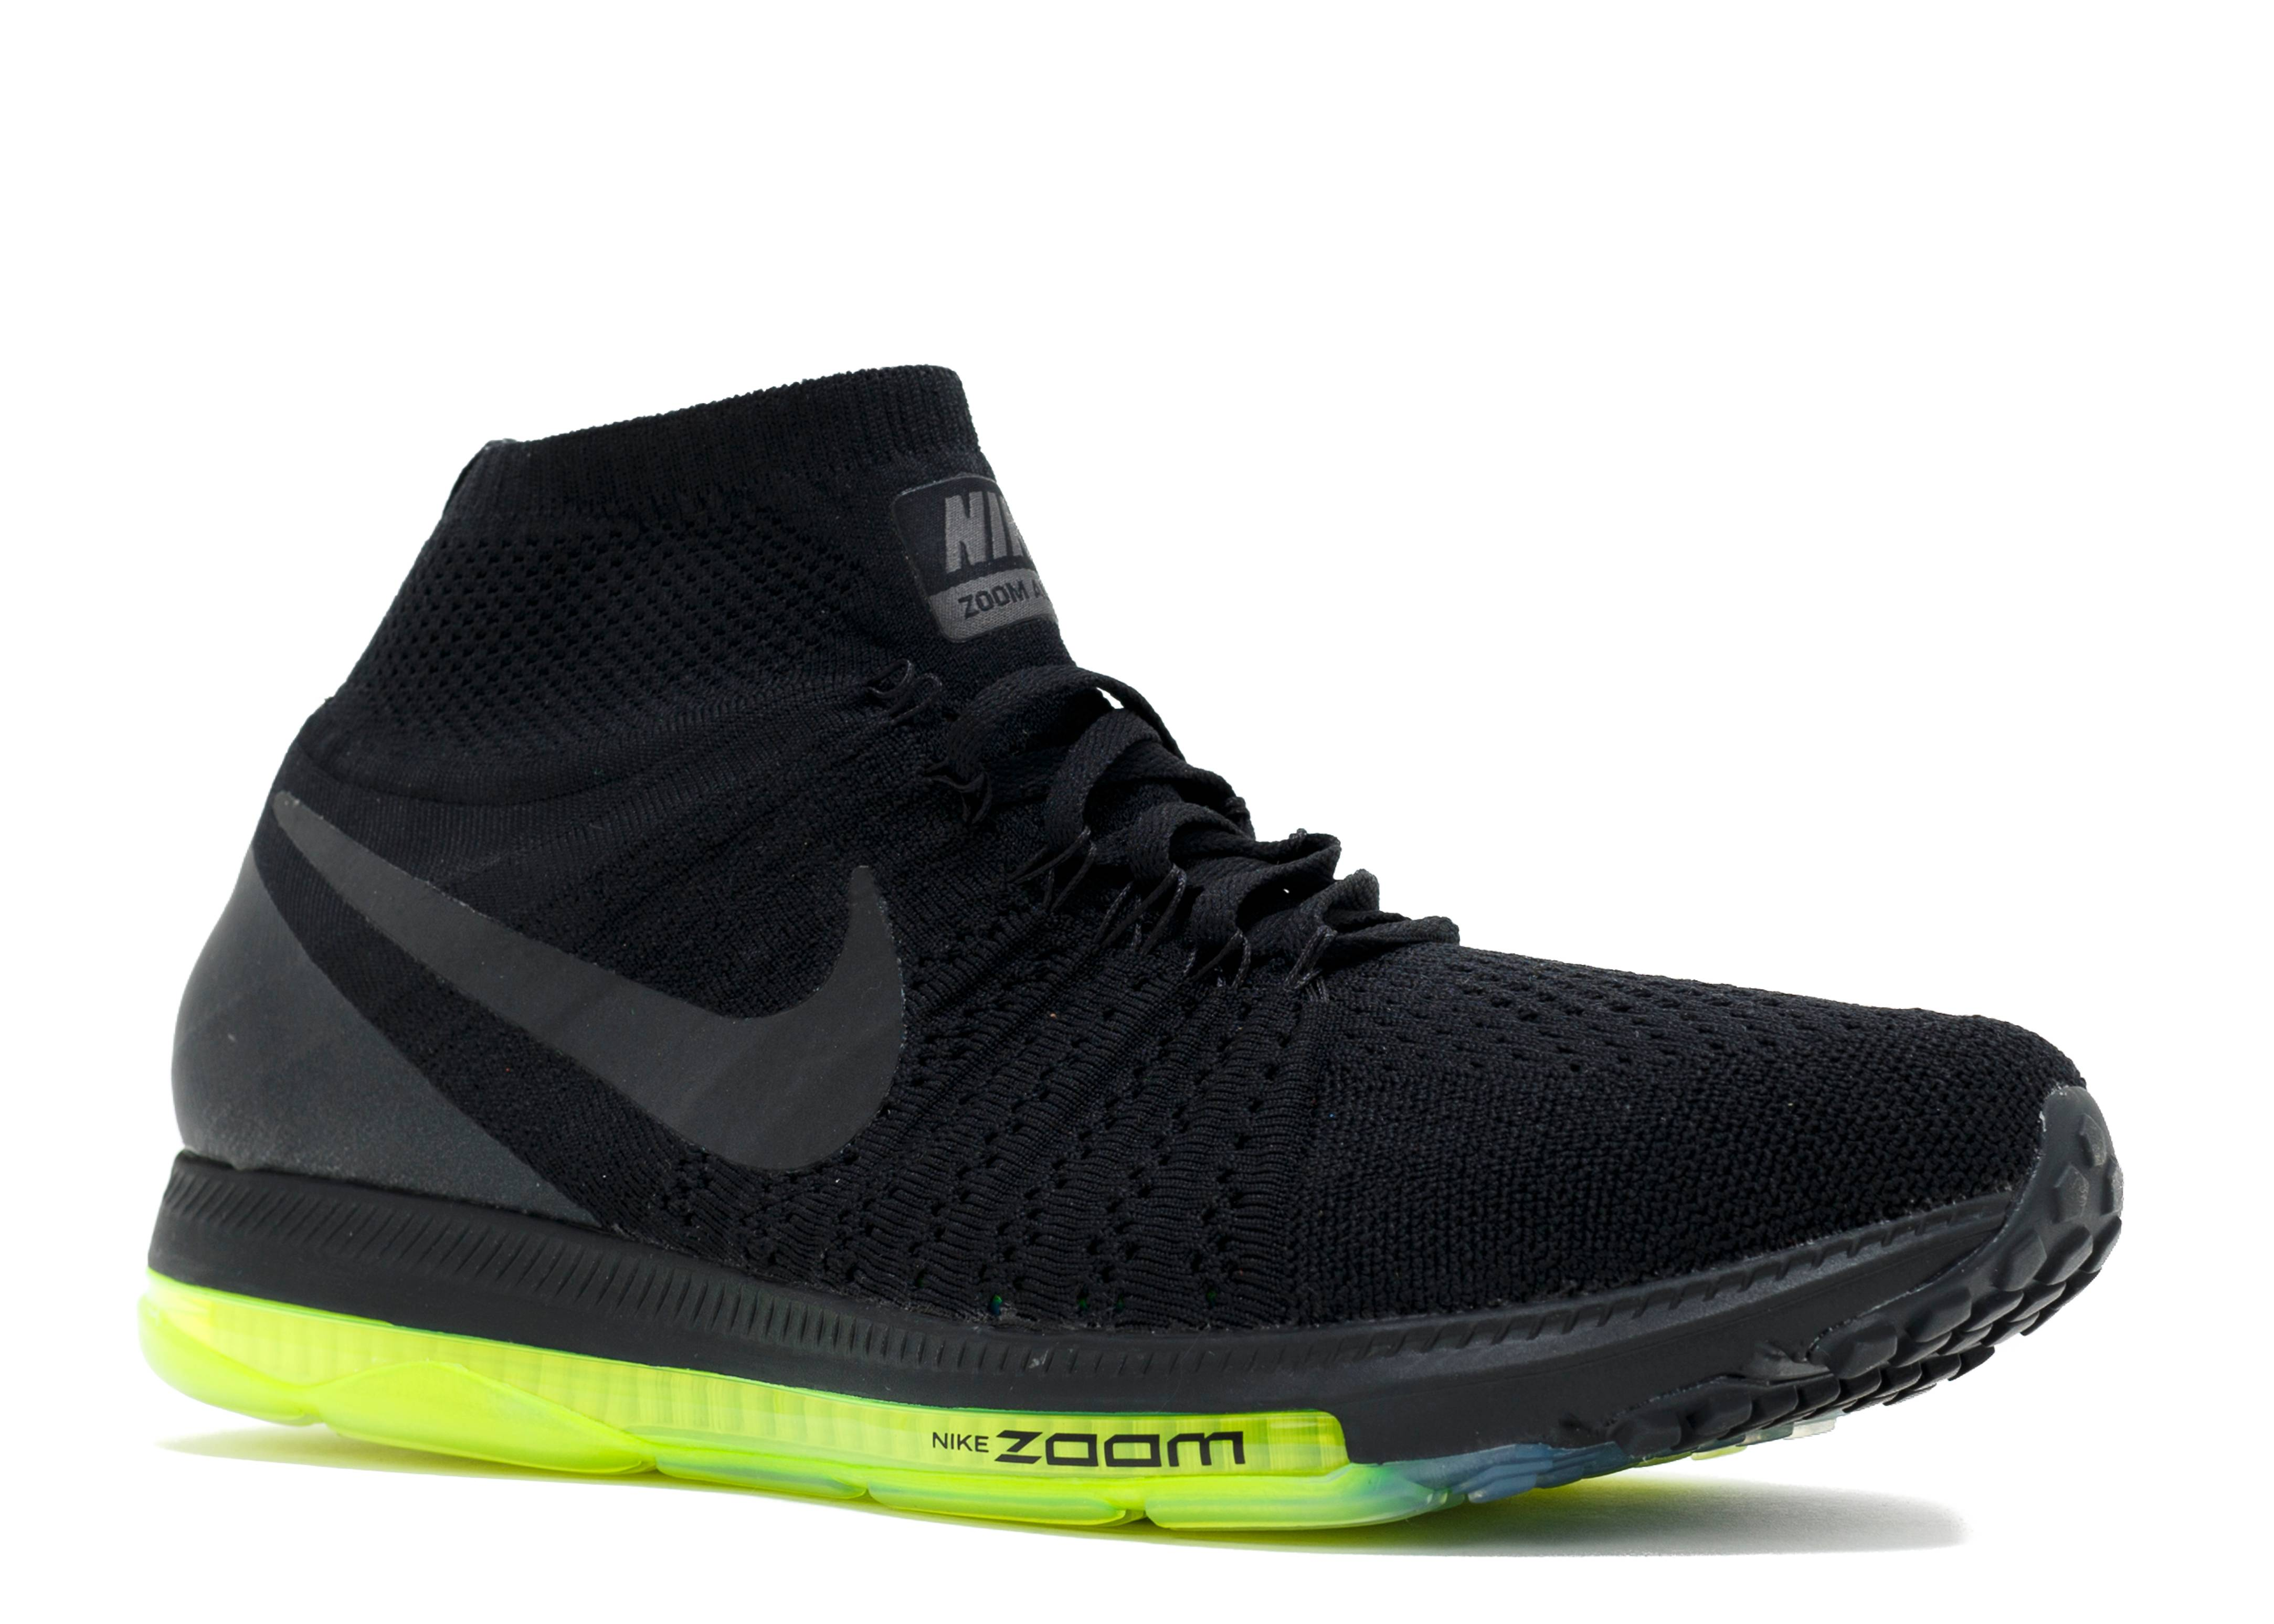 official photos 40034 3d2ed Zoom All Out Flyknit - Nike - 844134 001 - black black-volt